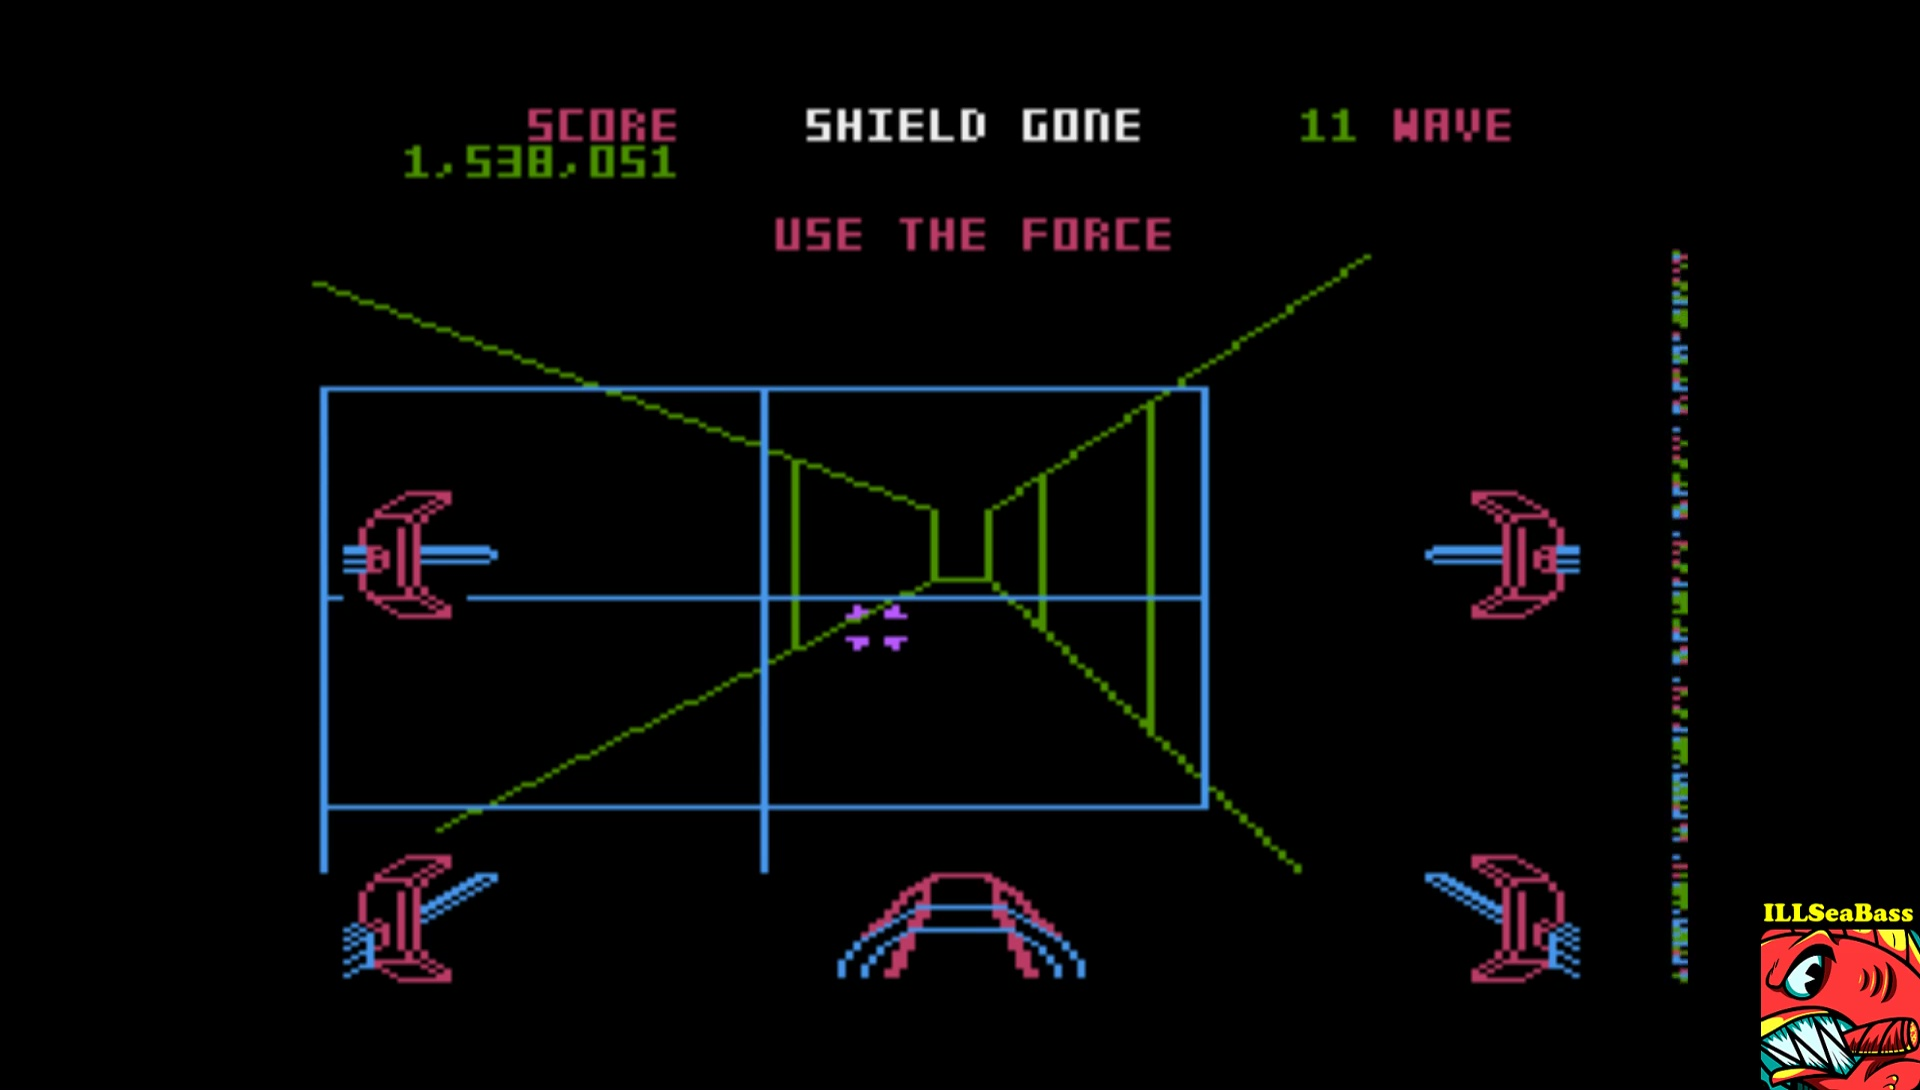 ILLSeaBass: Star Wars: The Arcade Game [Skill 2] (Atari 5200 Emulated) 1,538,051 points on 2017-03-24 22:13:44